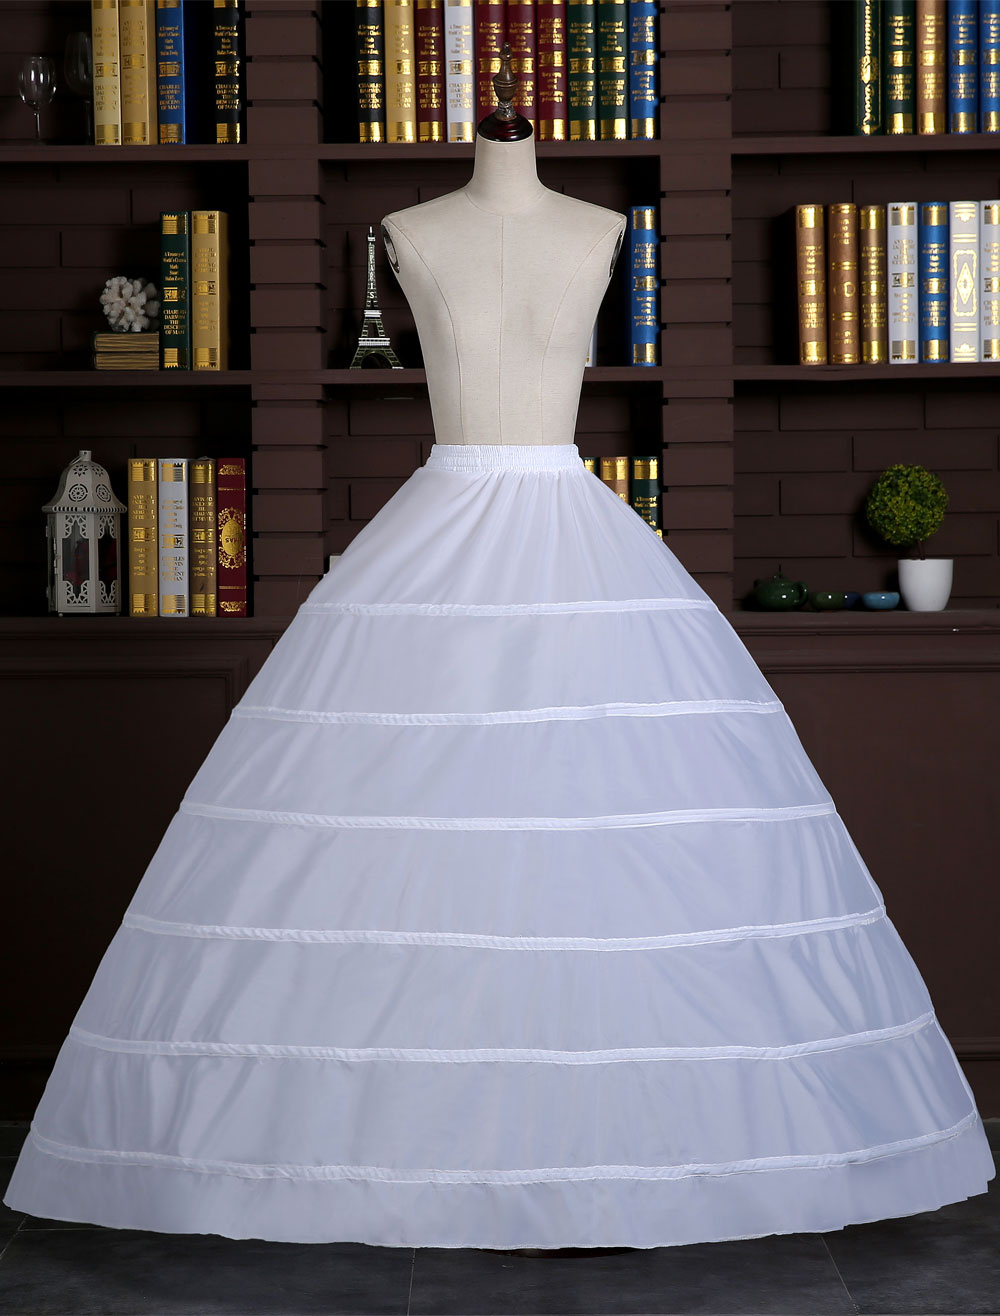 8c120db3a237 ... White Wedding Petticoat Ball Gown Slip 1 tier Bridal Hoop Skirt-No.3. 1.  50%OFF. Color:White